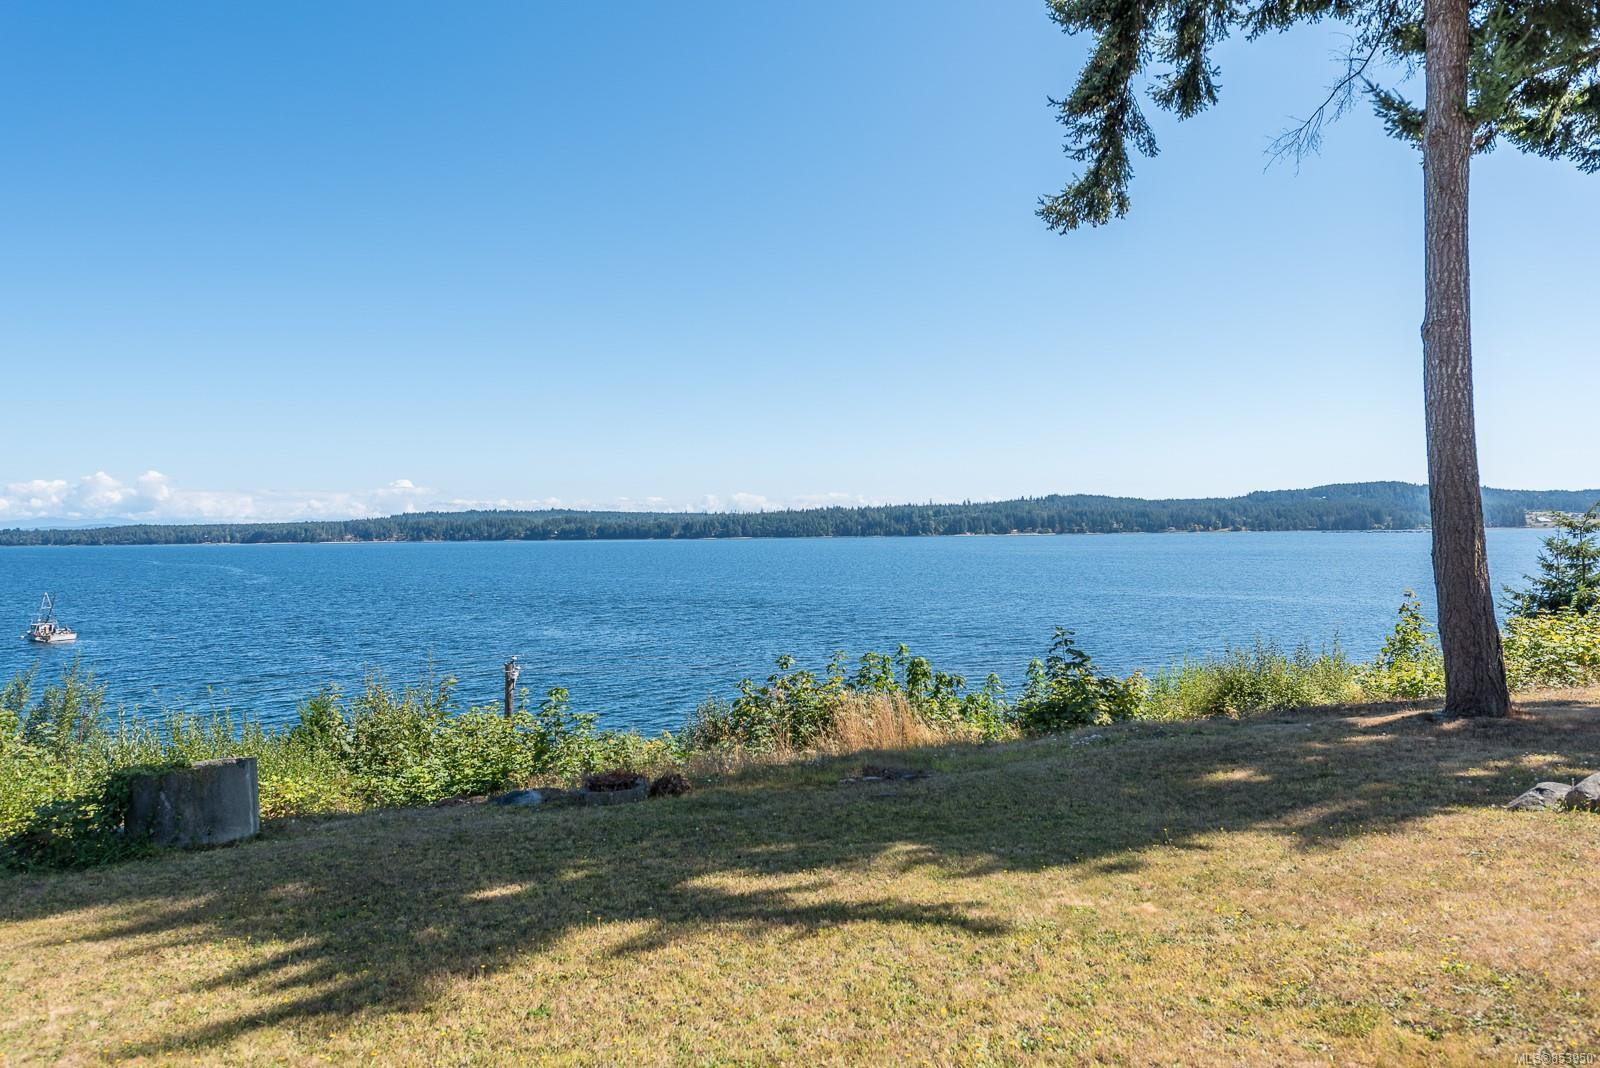 Photo 40: Photos: 5880 GARVIN Rd in : CV Union Bay/Fanny Bay House for sale (Comox Valley)  : MLS®# 853950